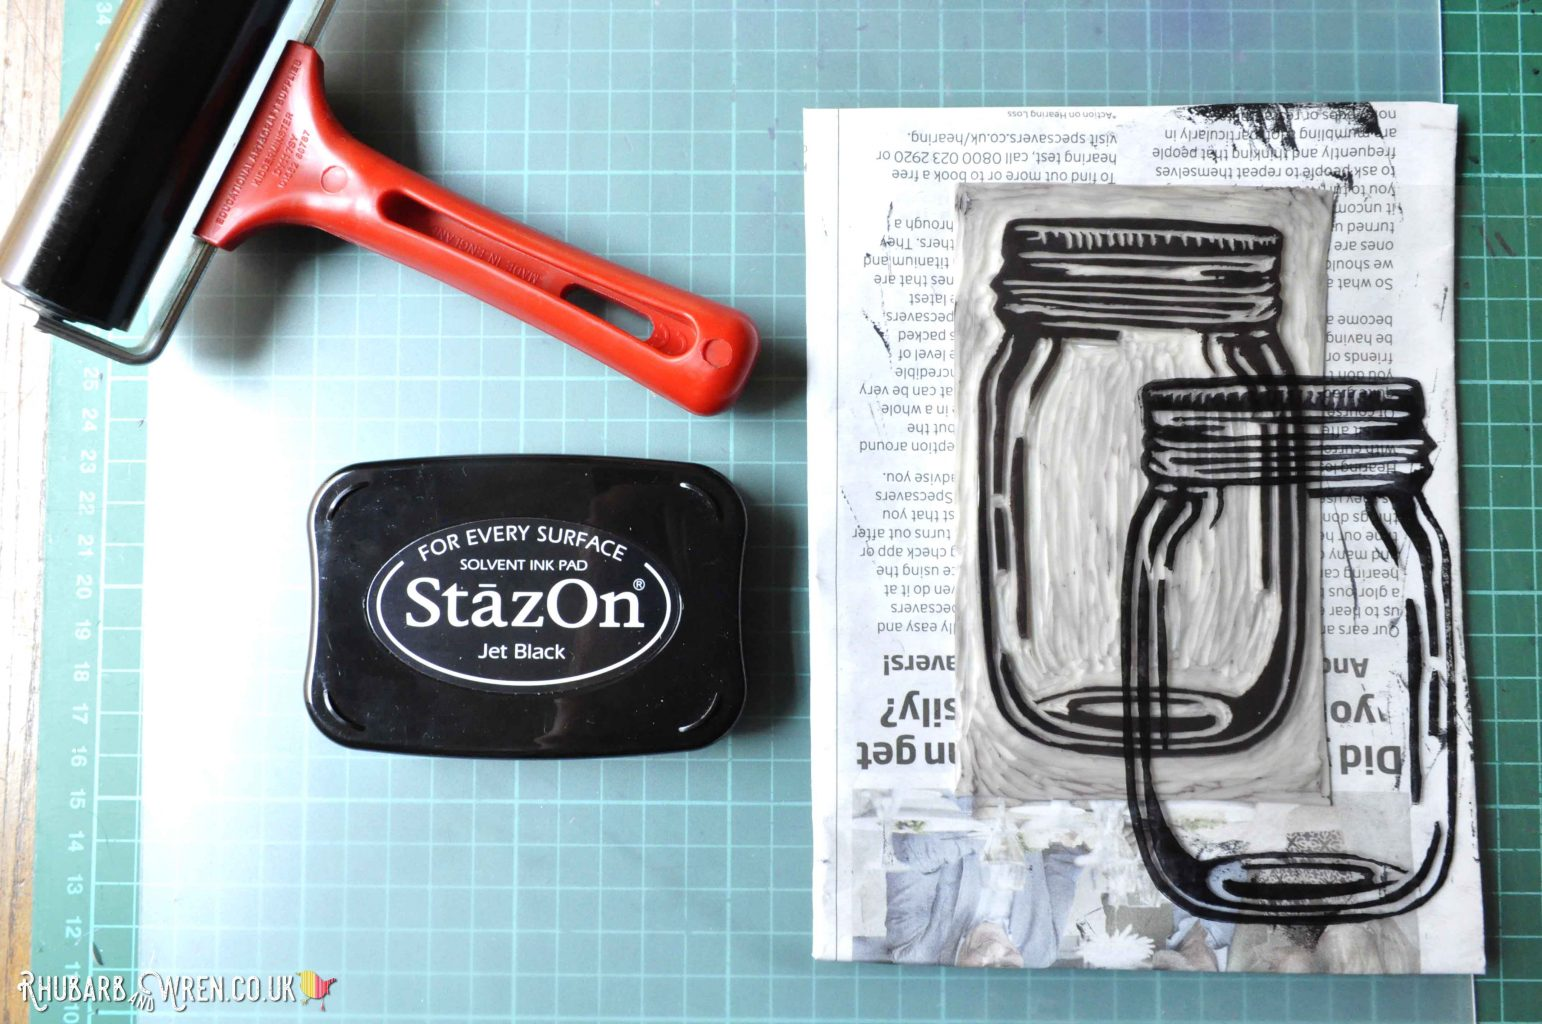 Stazon ink pad and lino print on acetate of mason jar.